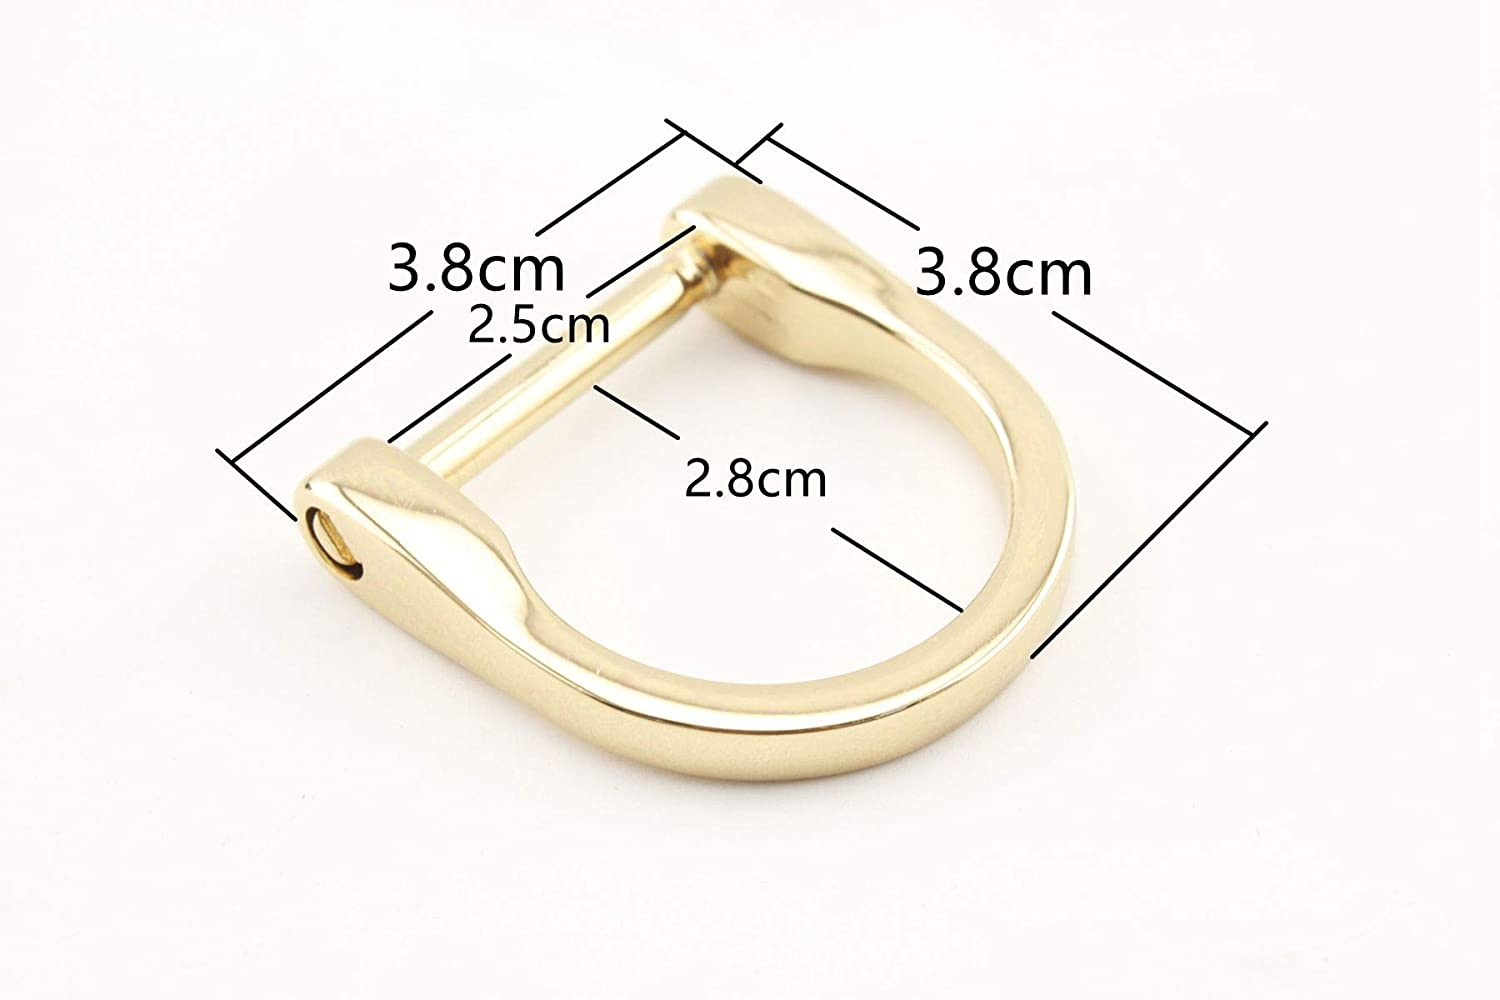 Golden, 1 inch / 25mm 4 Different Size zinc Alloy D Rings D-Ring with Screw,Buckles Dismountable Screw for Buckle Straps Bags Belt,Purse Making, Bag Making,Bag Replacement, 6 Pieces per lot AT73